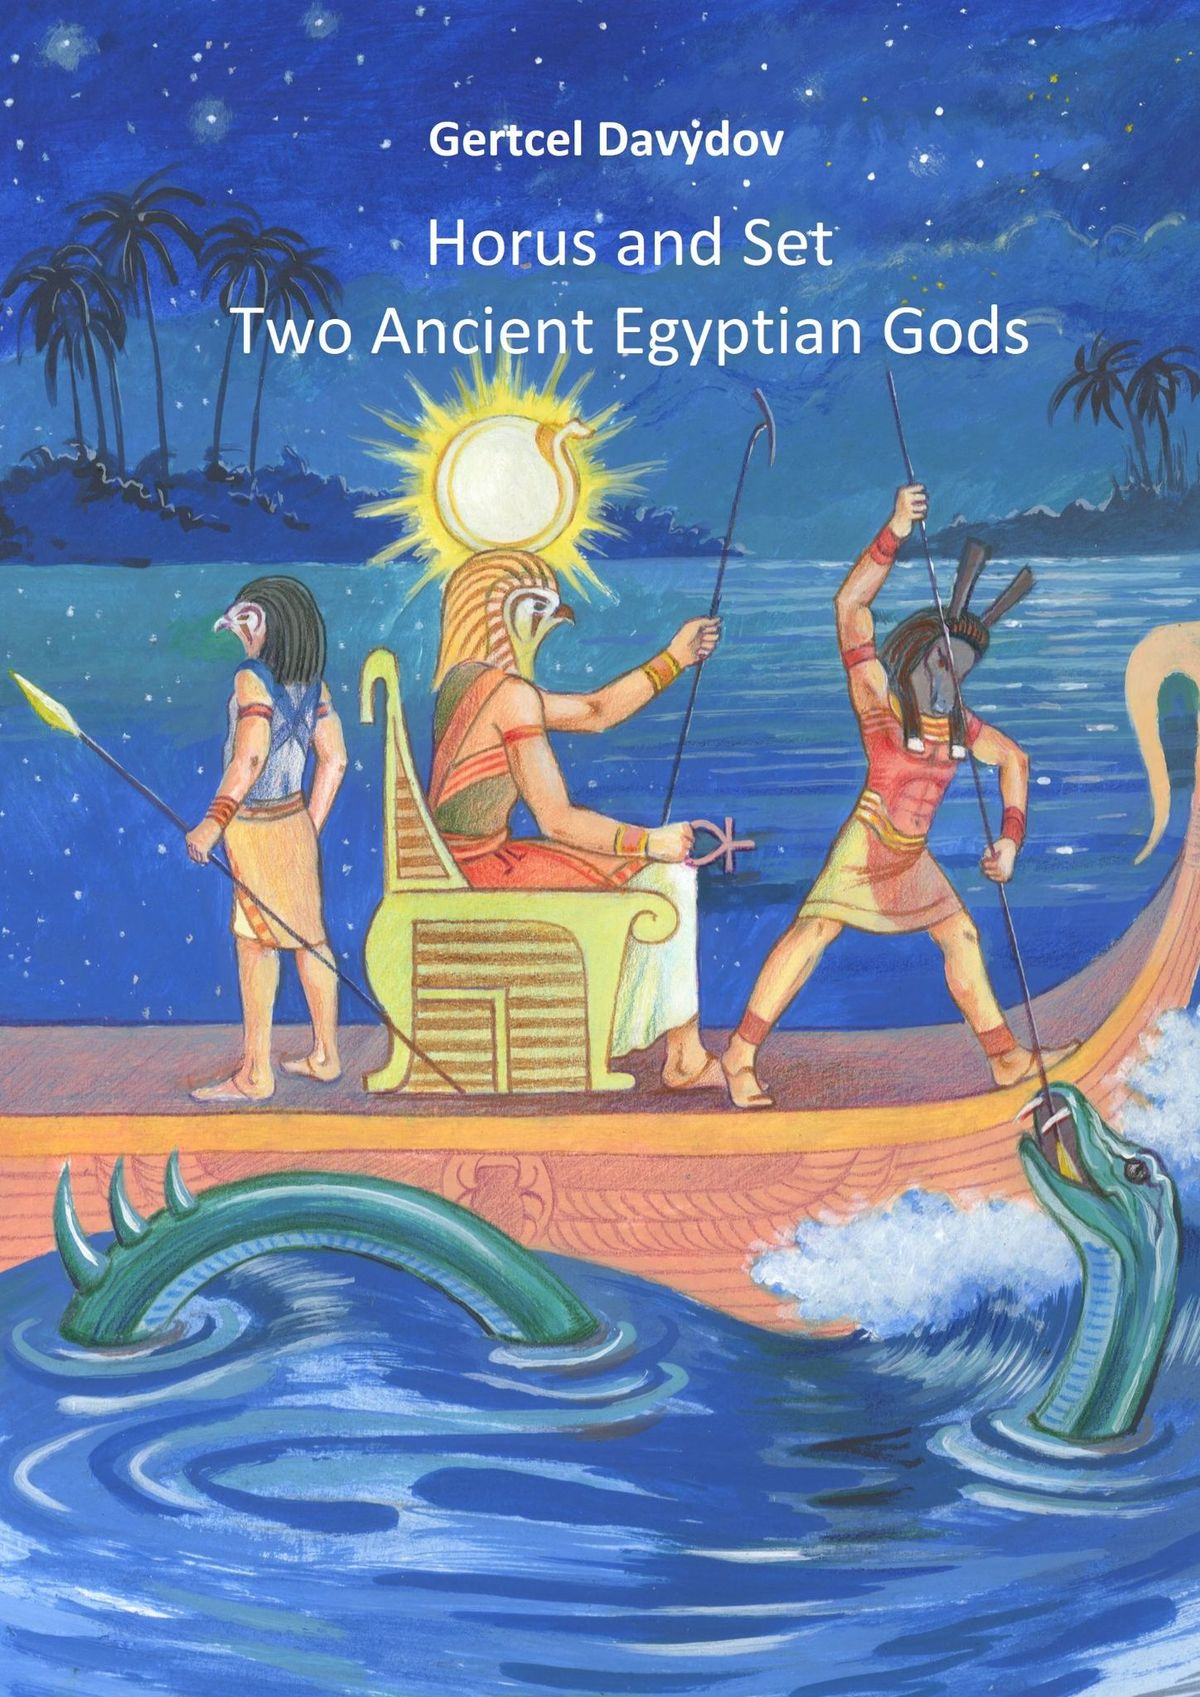 Gertz (Gertcel) Davydov Horus and Set: Two Ancient Egyptian Gods